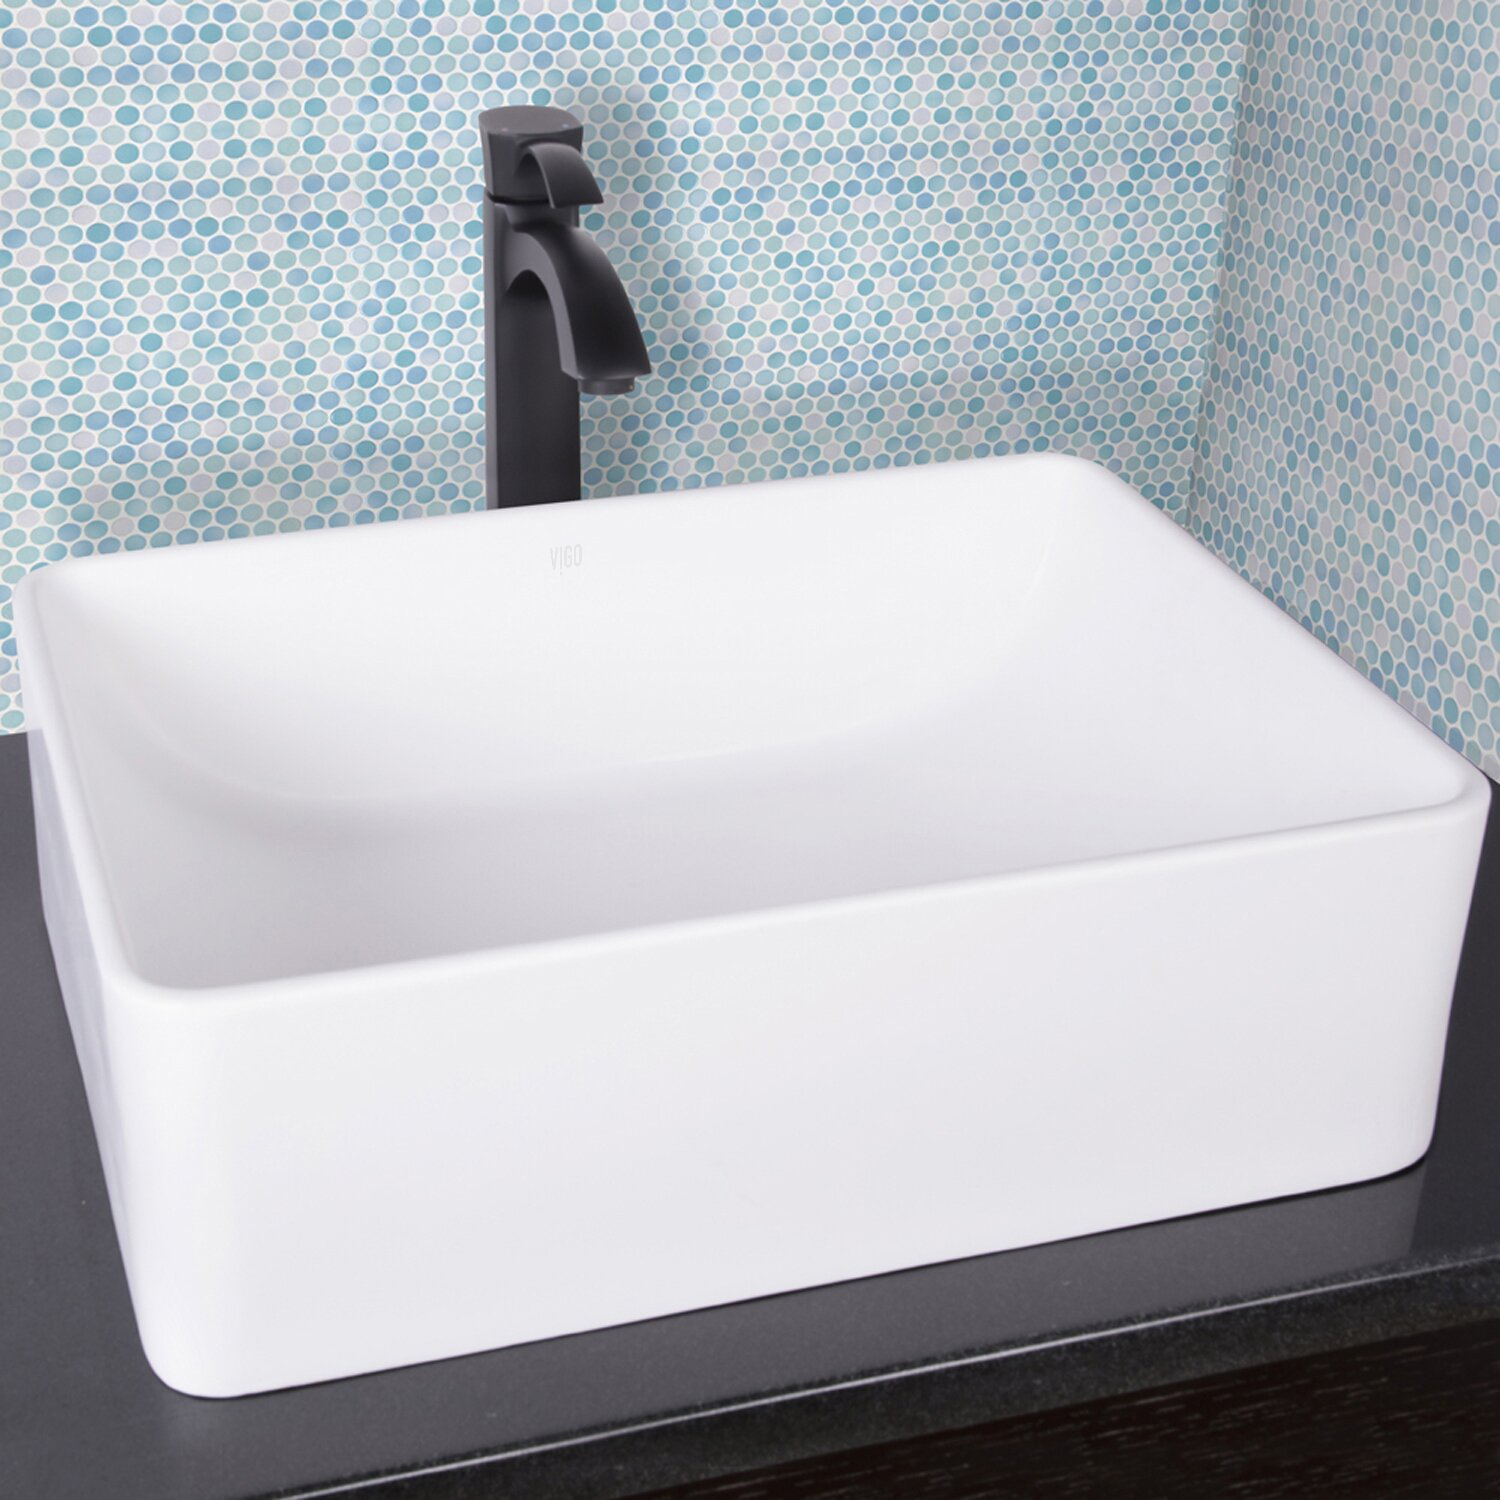 Bathroom square vessel sinks - Vigo Caladesi Matte Stone Vessel Bathroom Sink